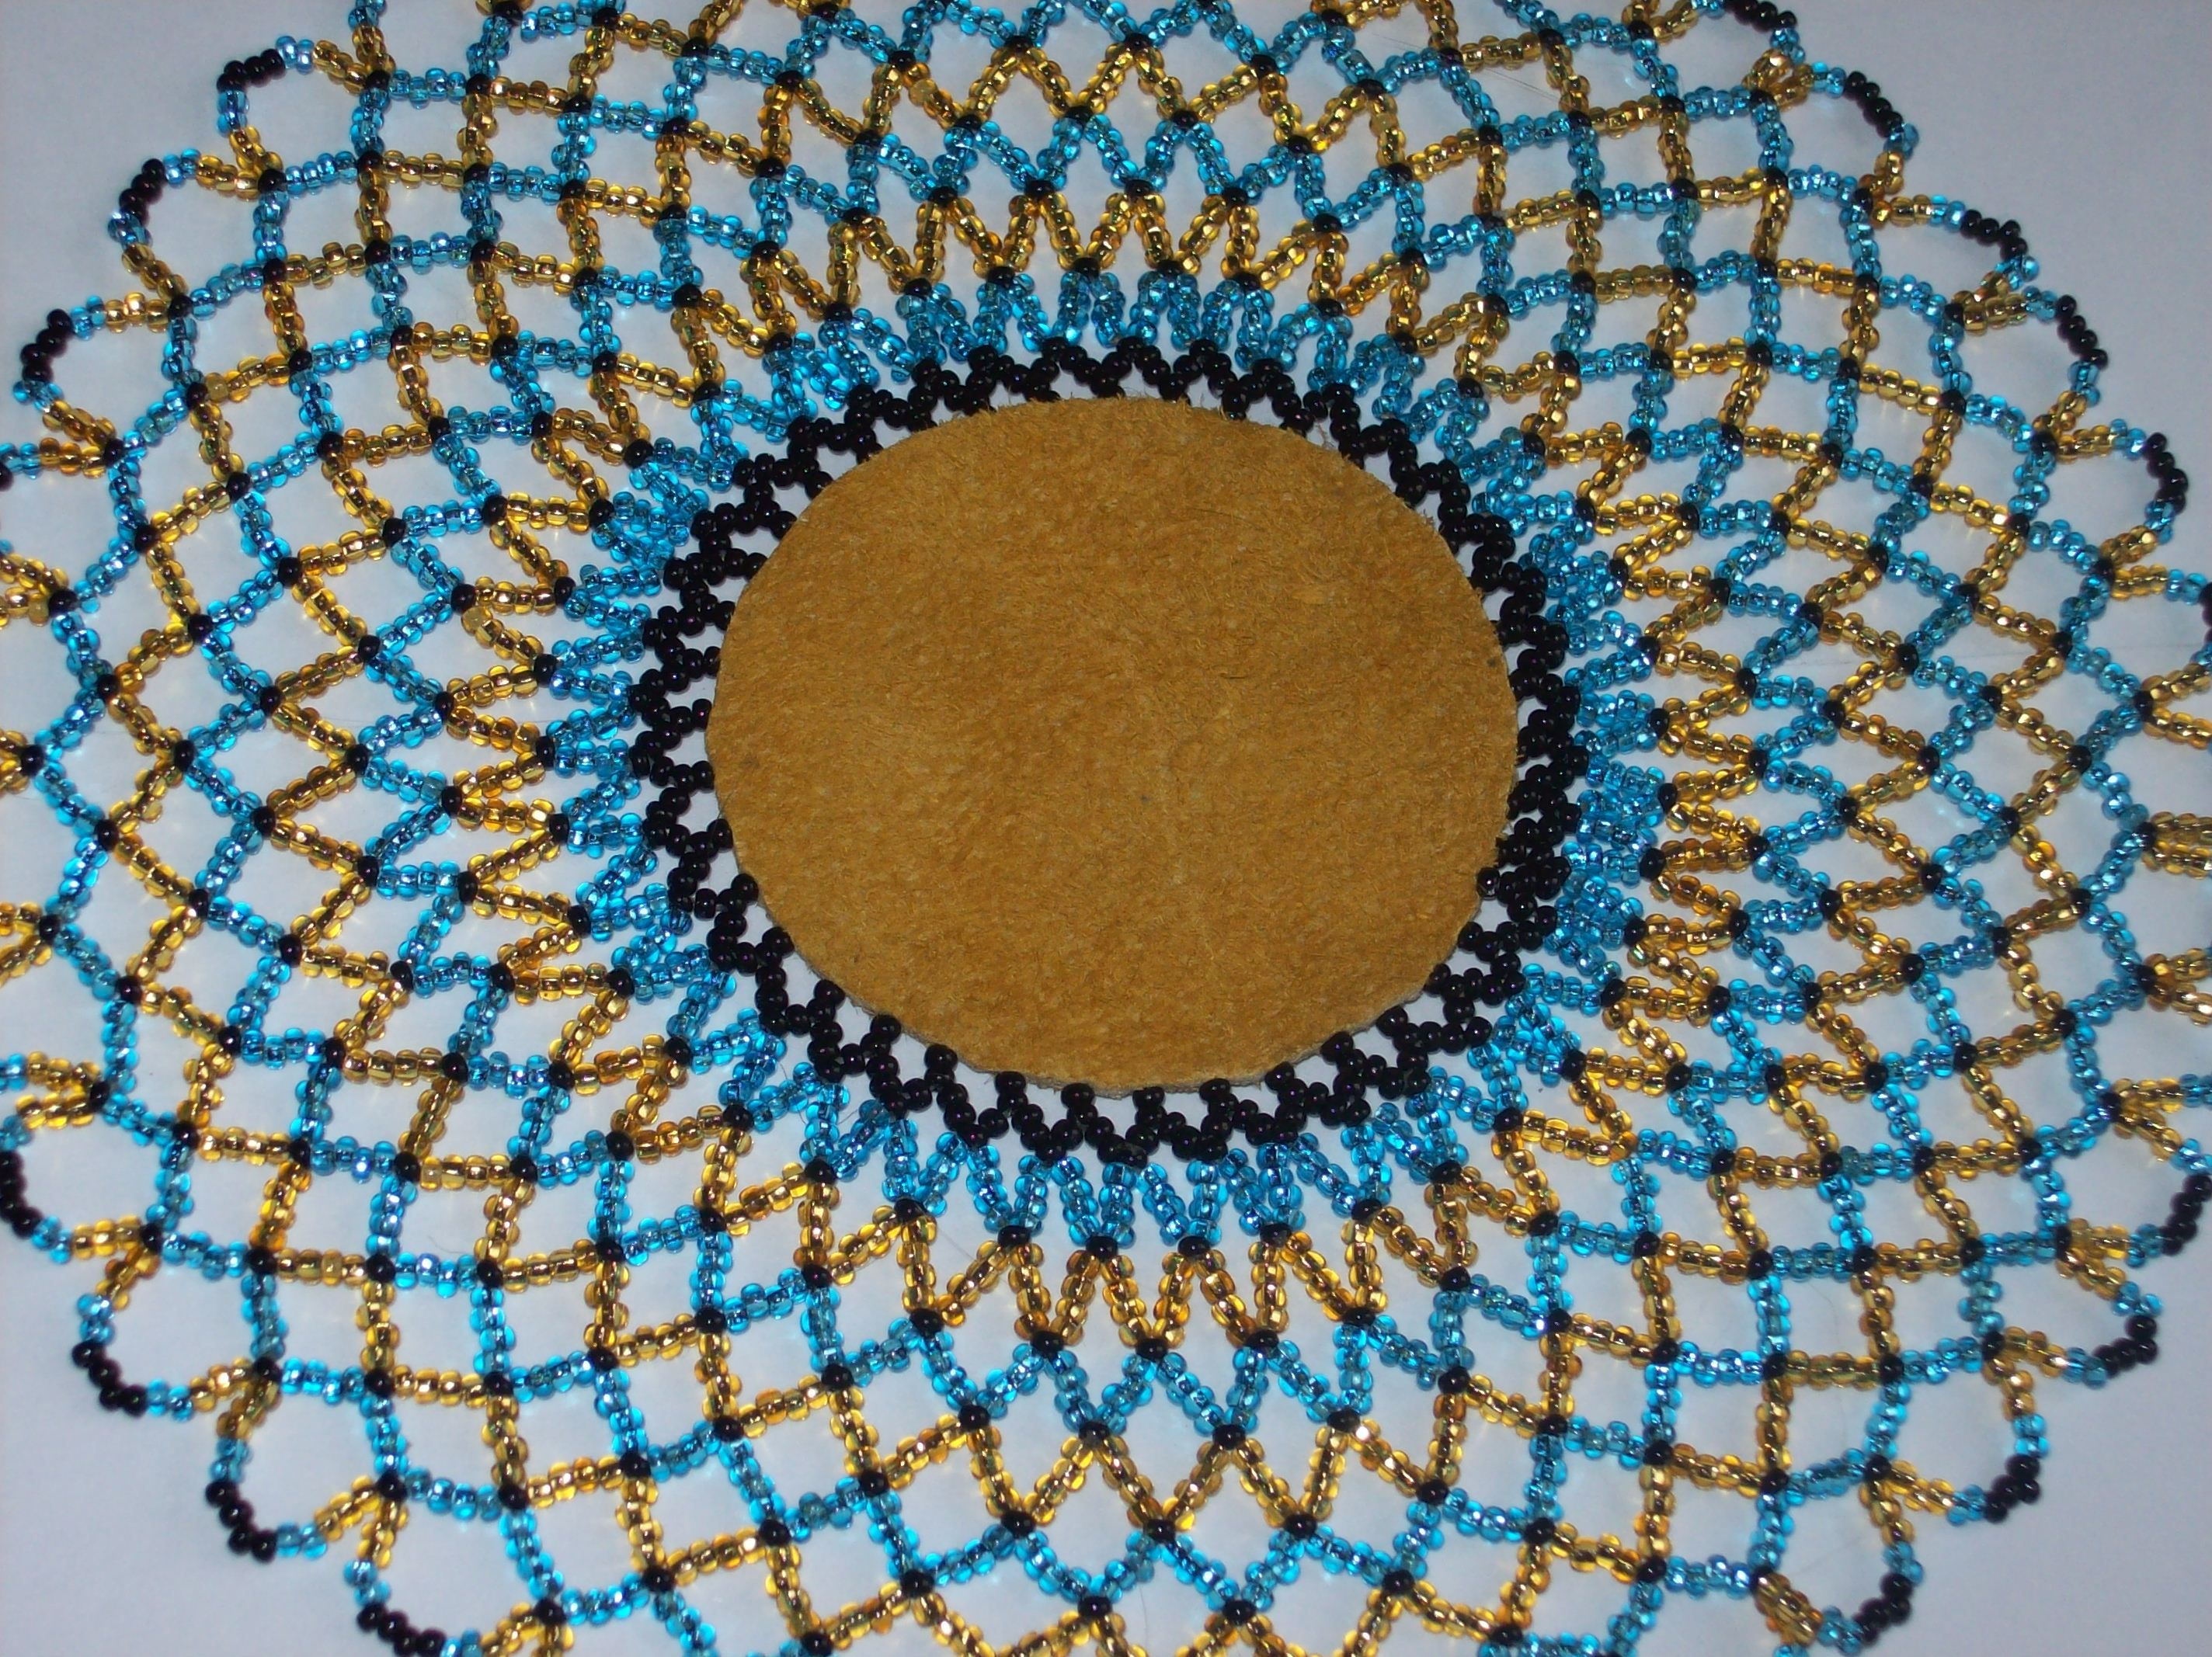 Free Seed Bead Patterns For Doilies  Google Search